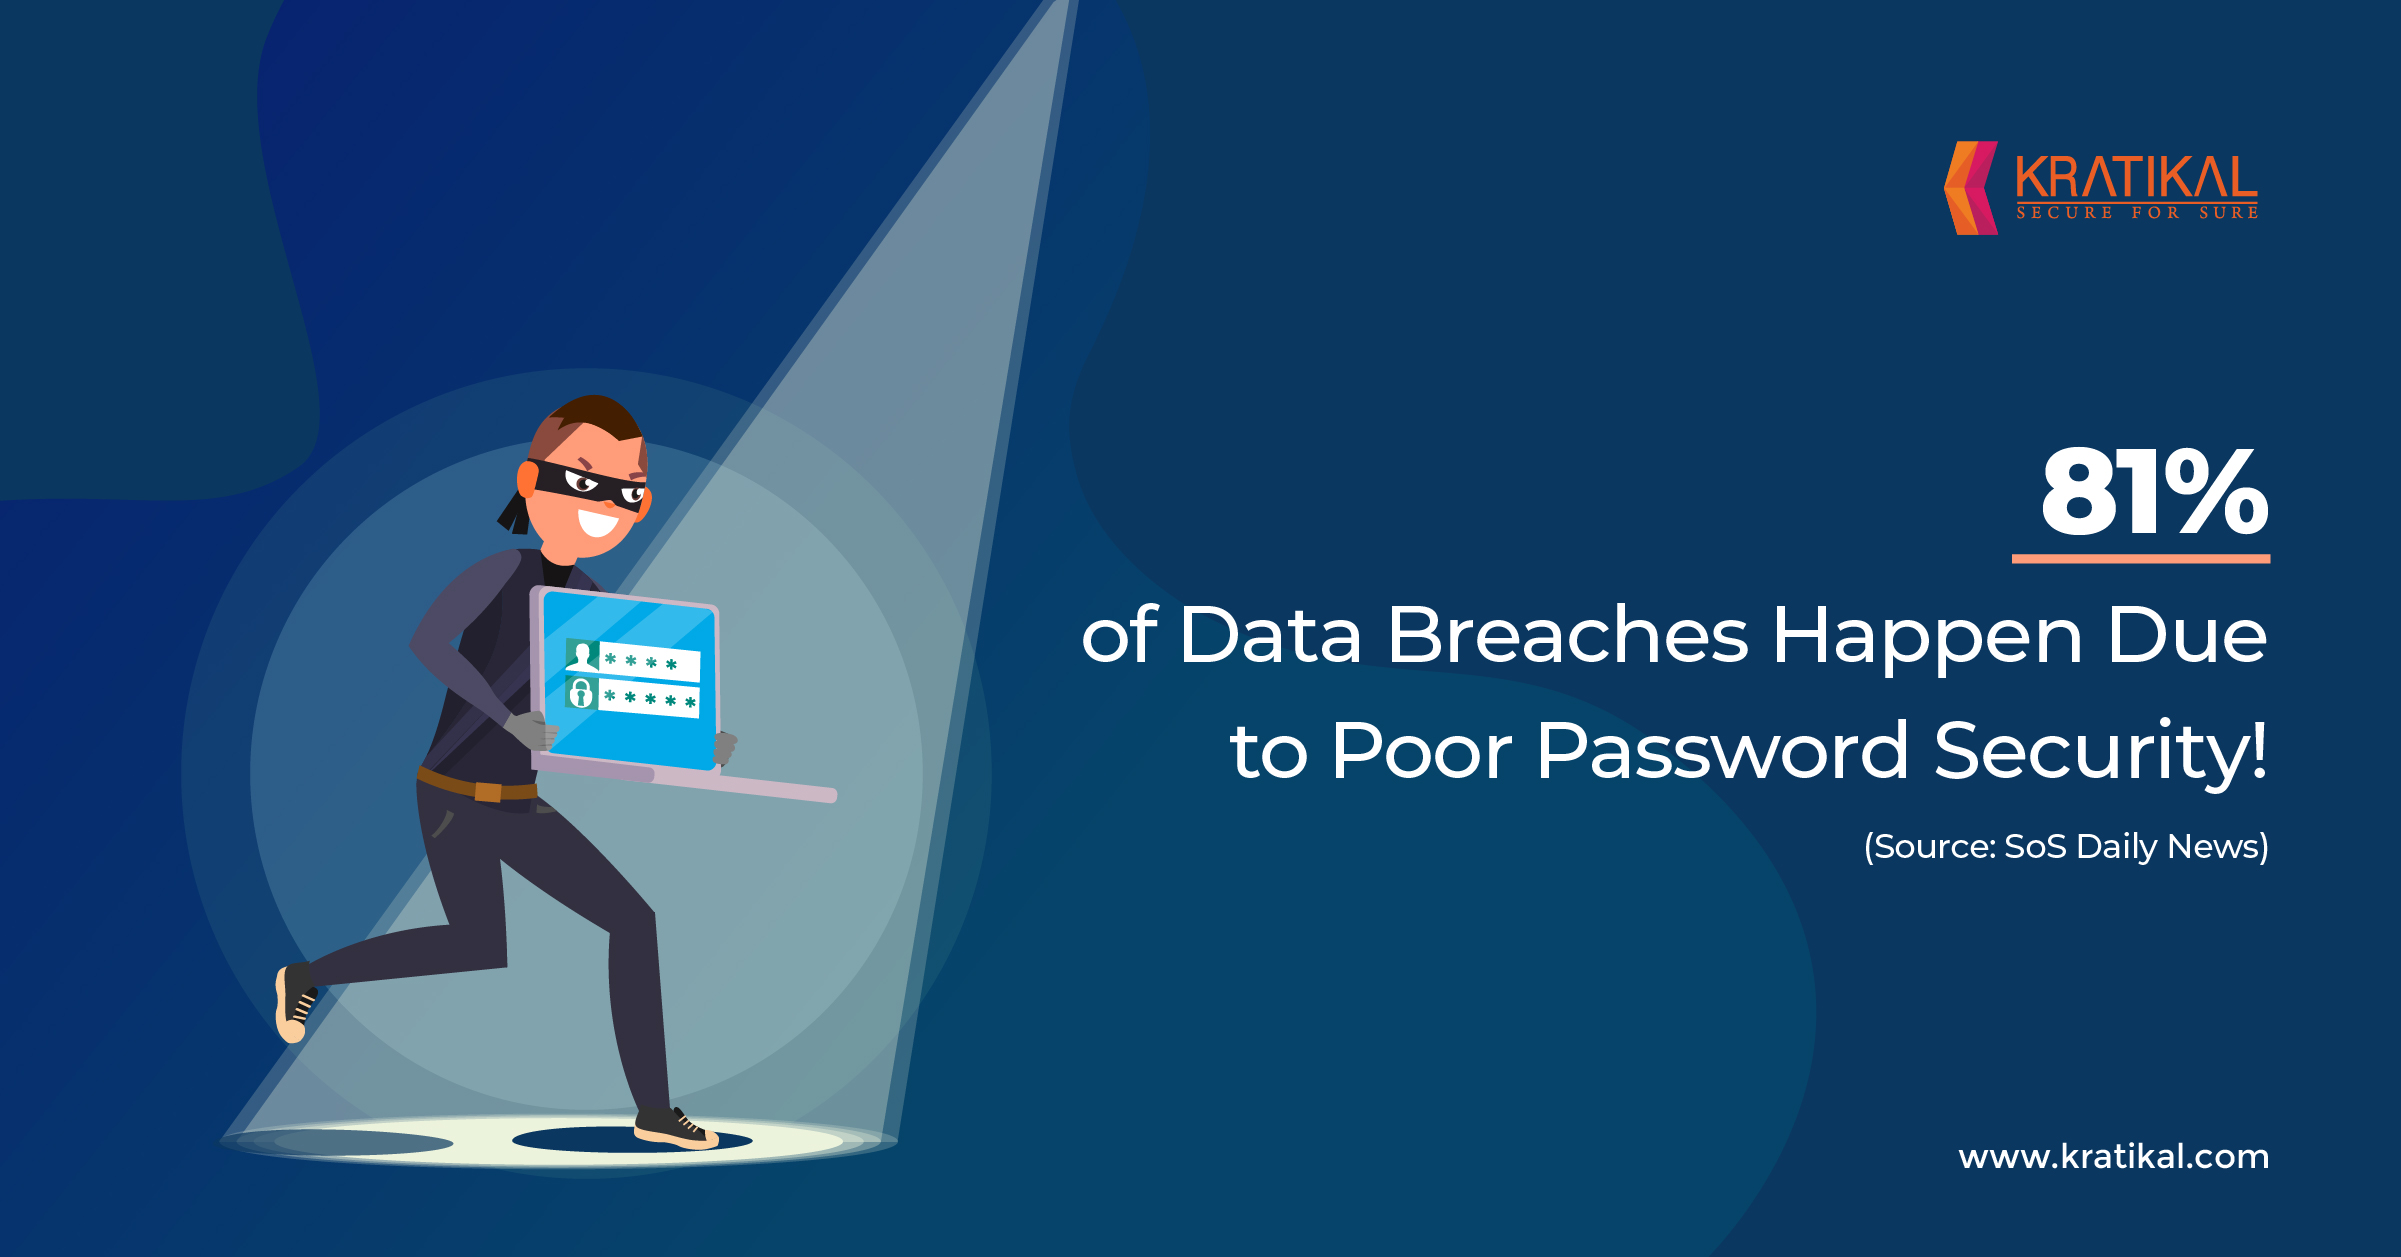 5 Risks of Password Sharing at Work